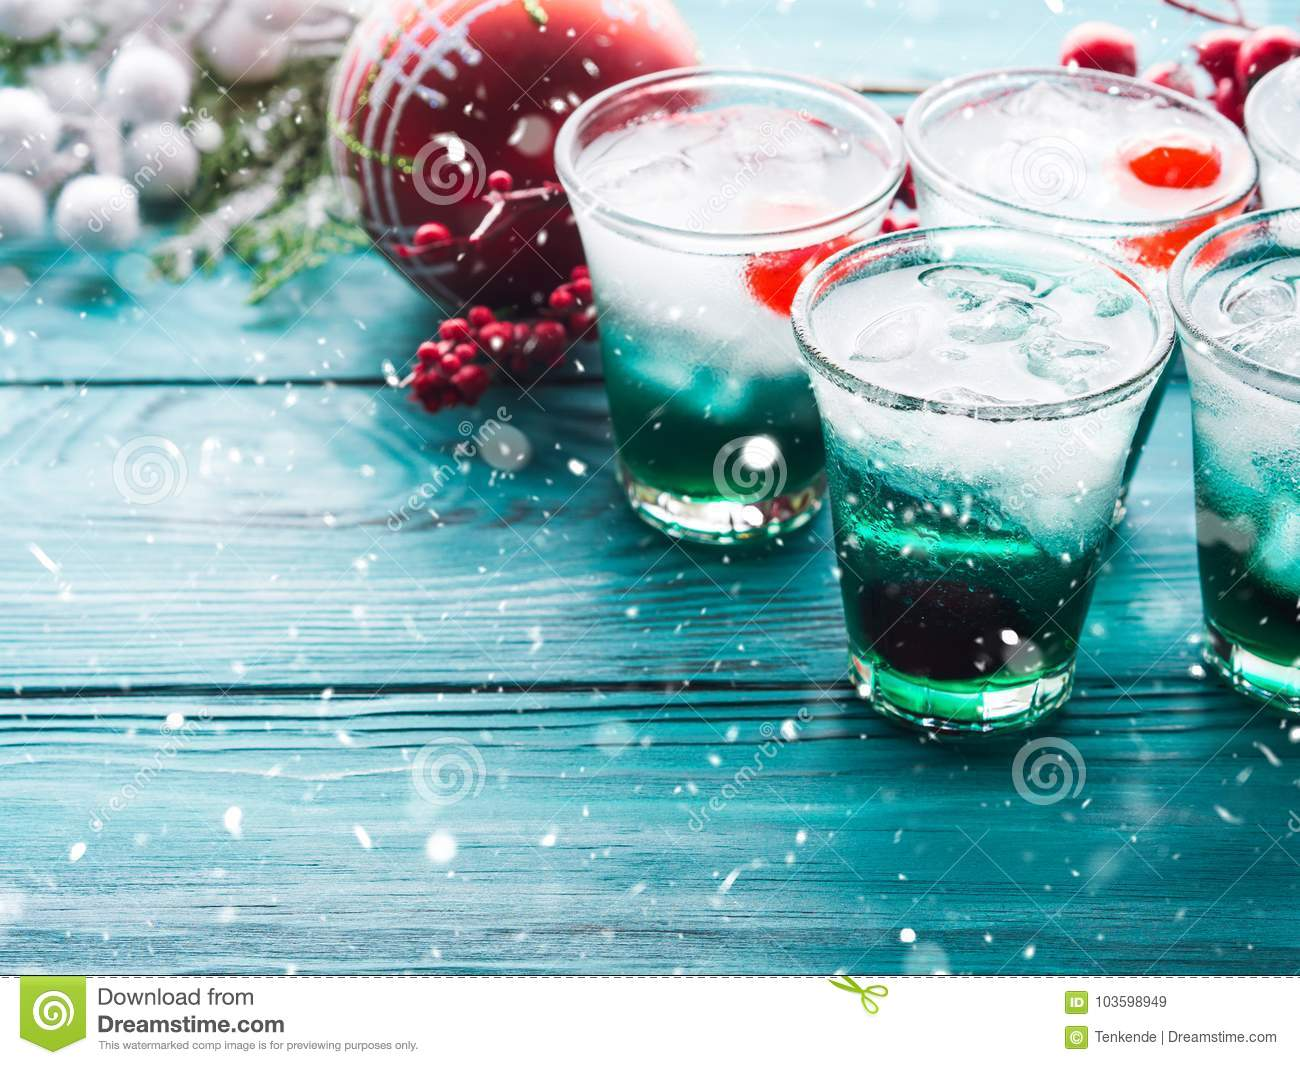 Christmas Drinks Alcohol.Christmas Holiday Party Background With Drinks Stock Image